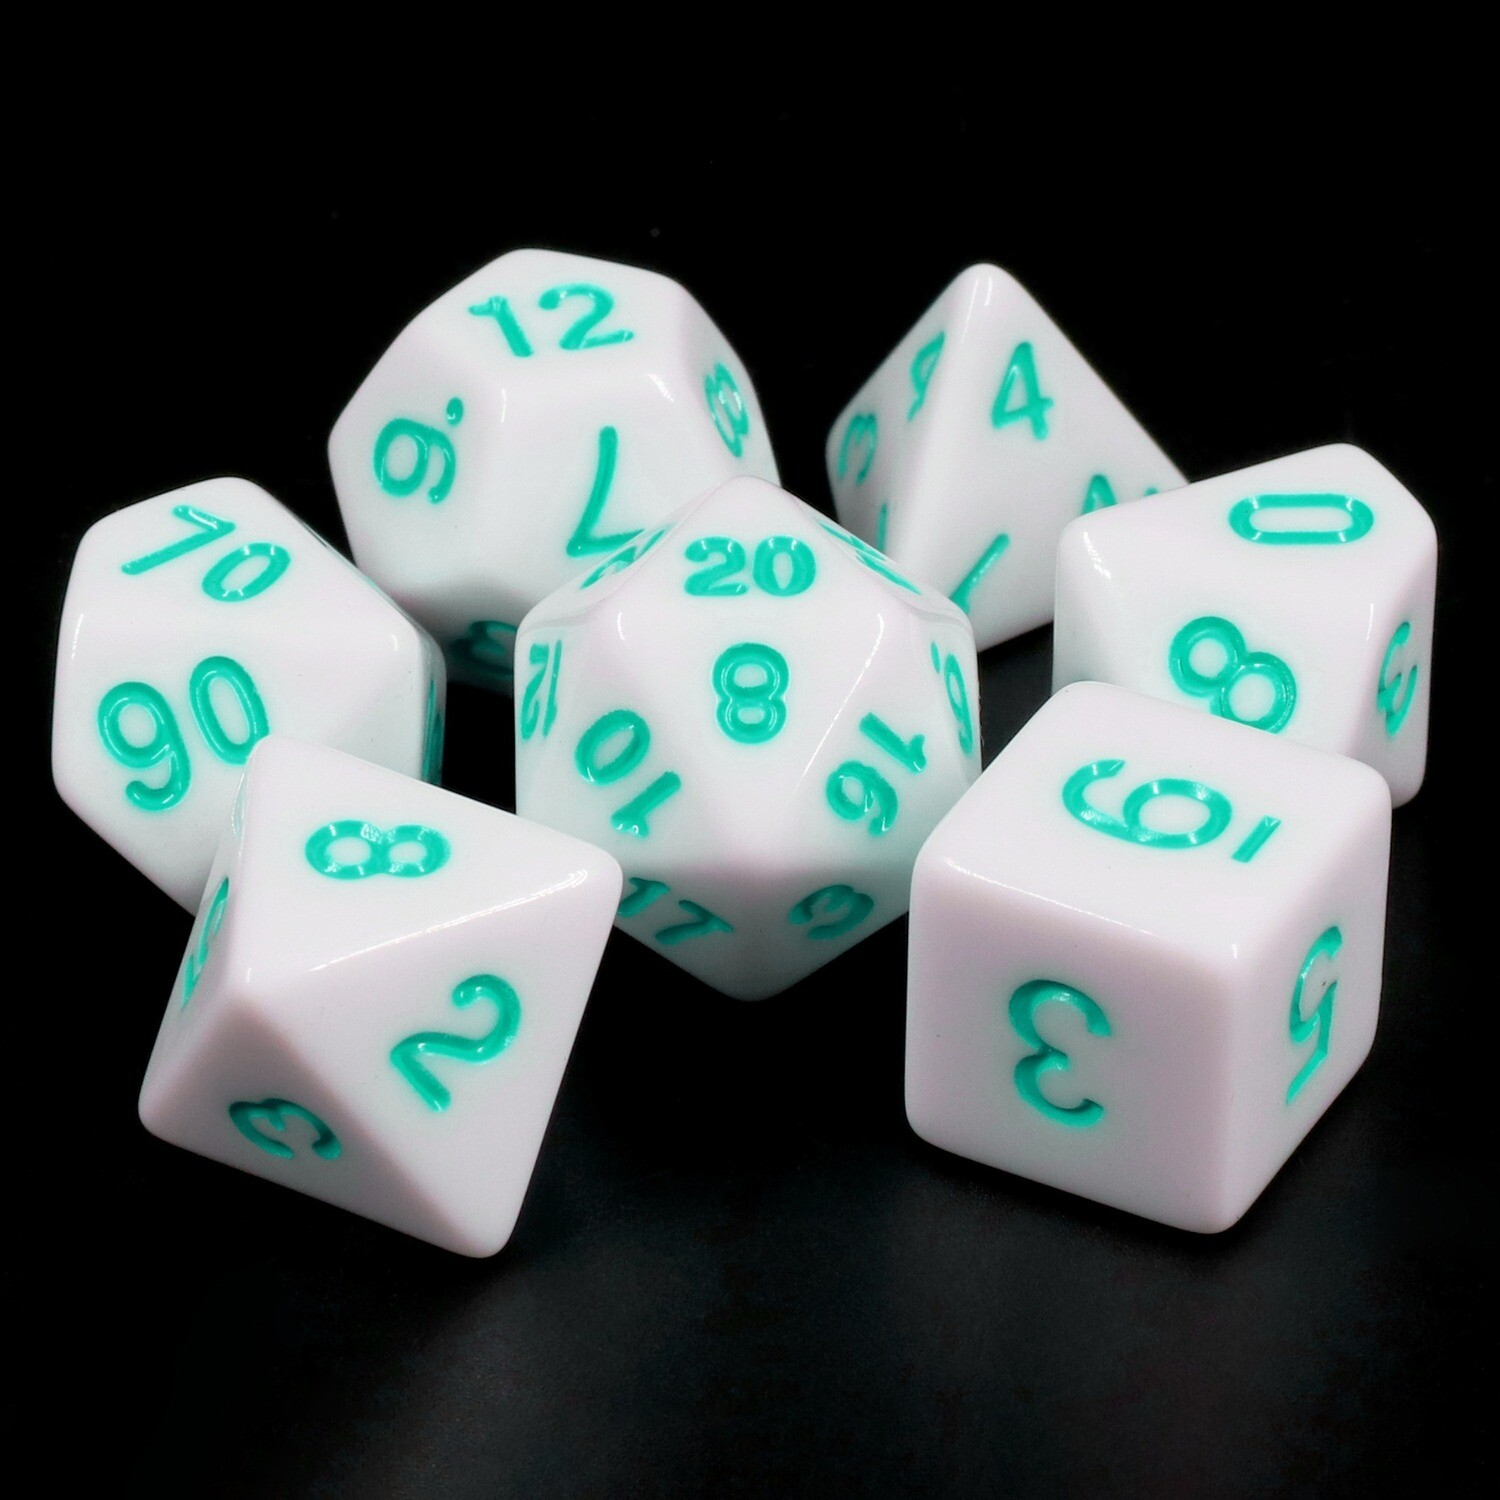 7 Die Set: Opaque White with Teal